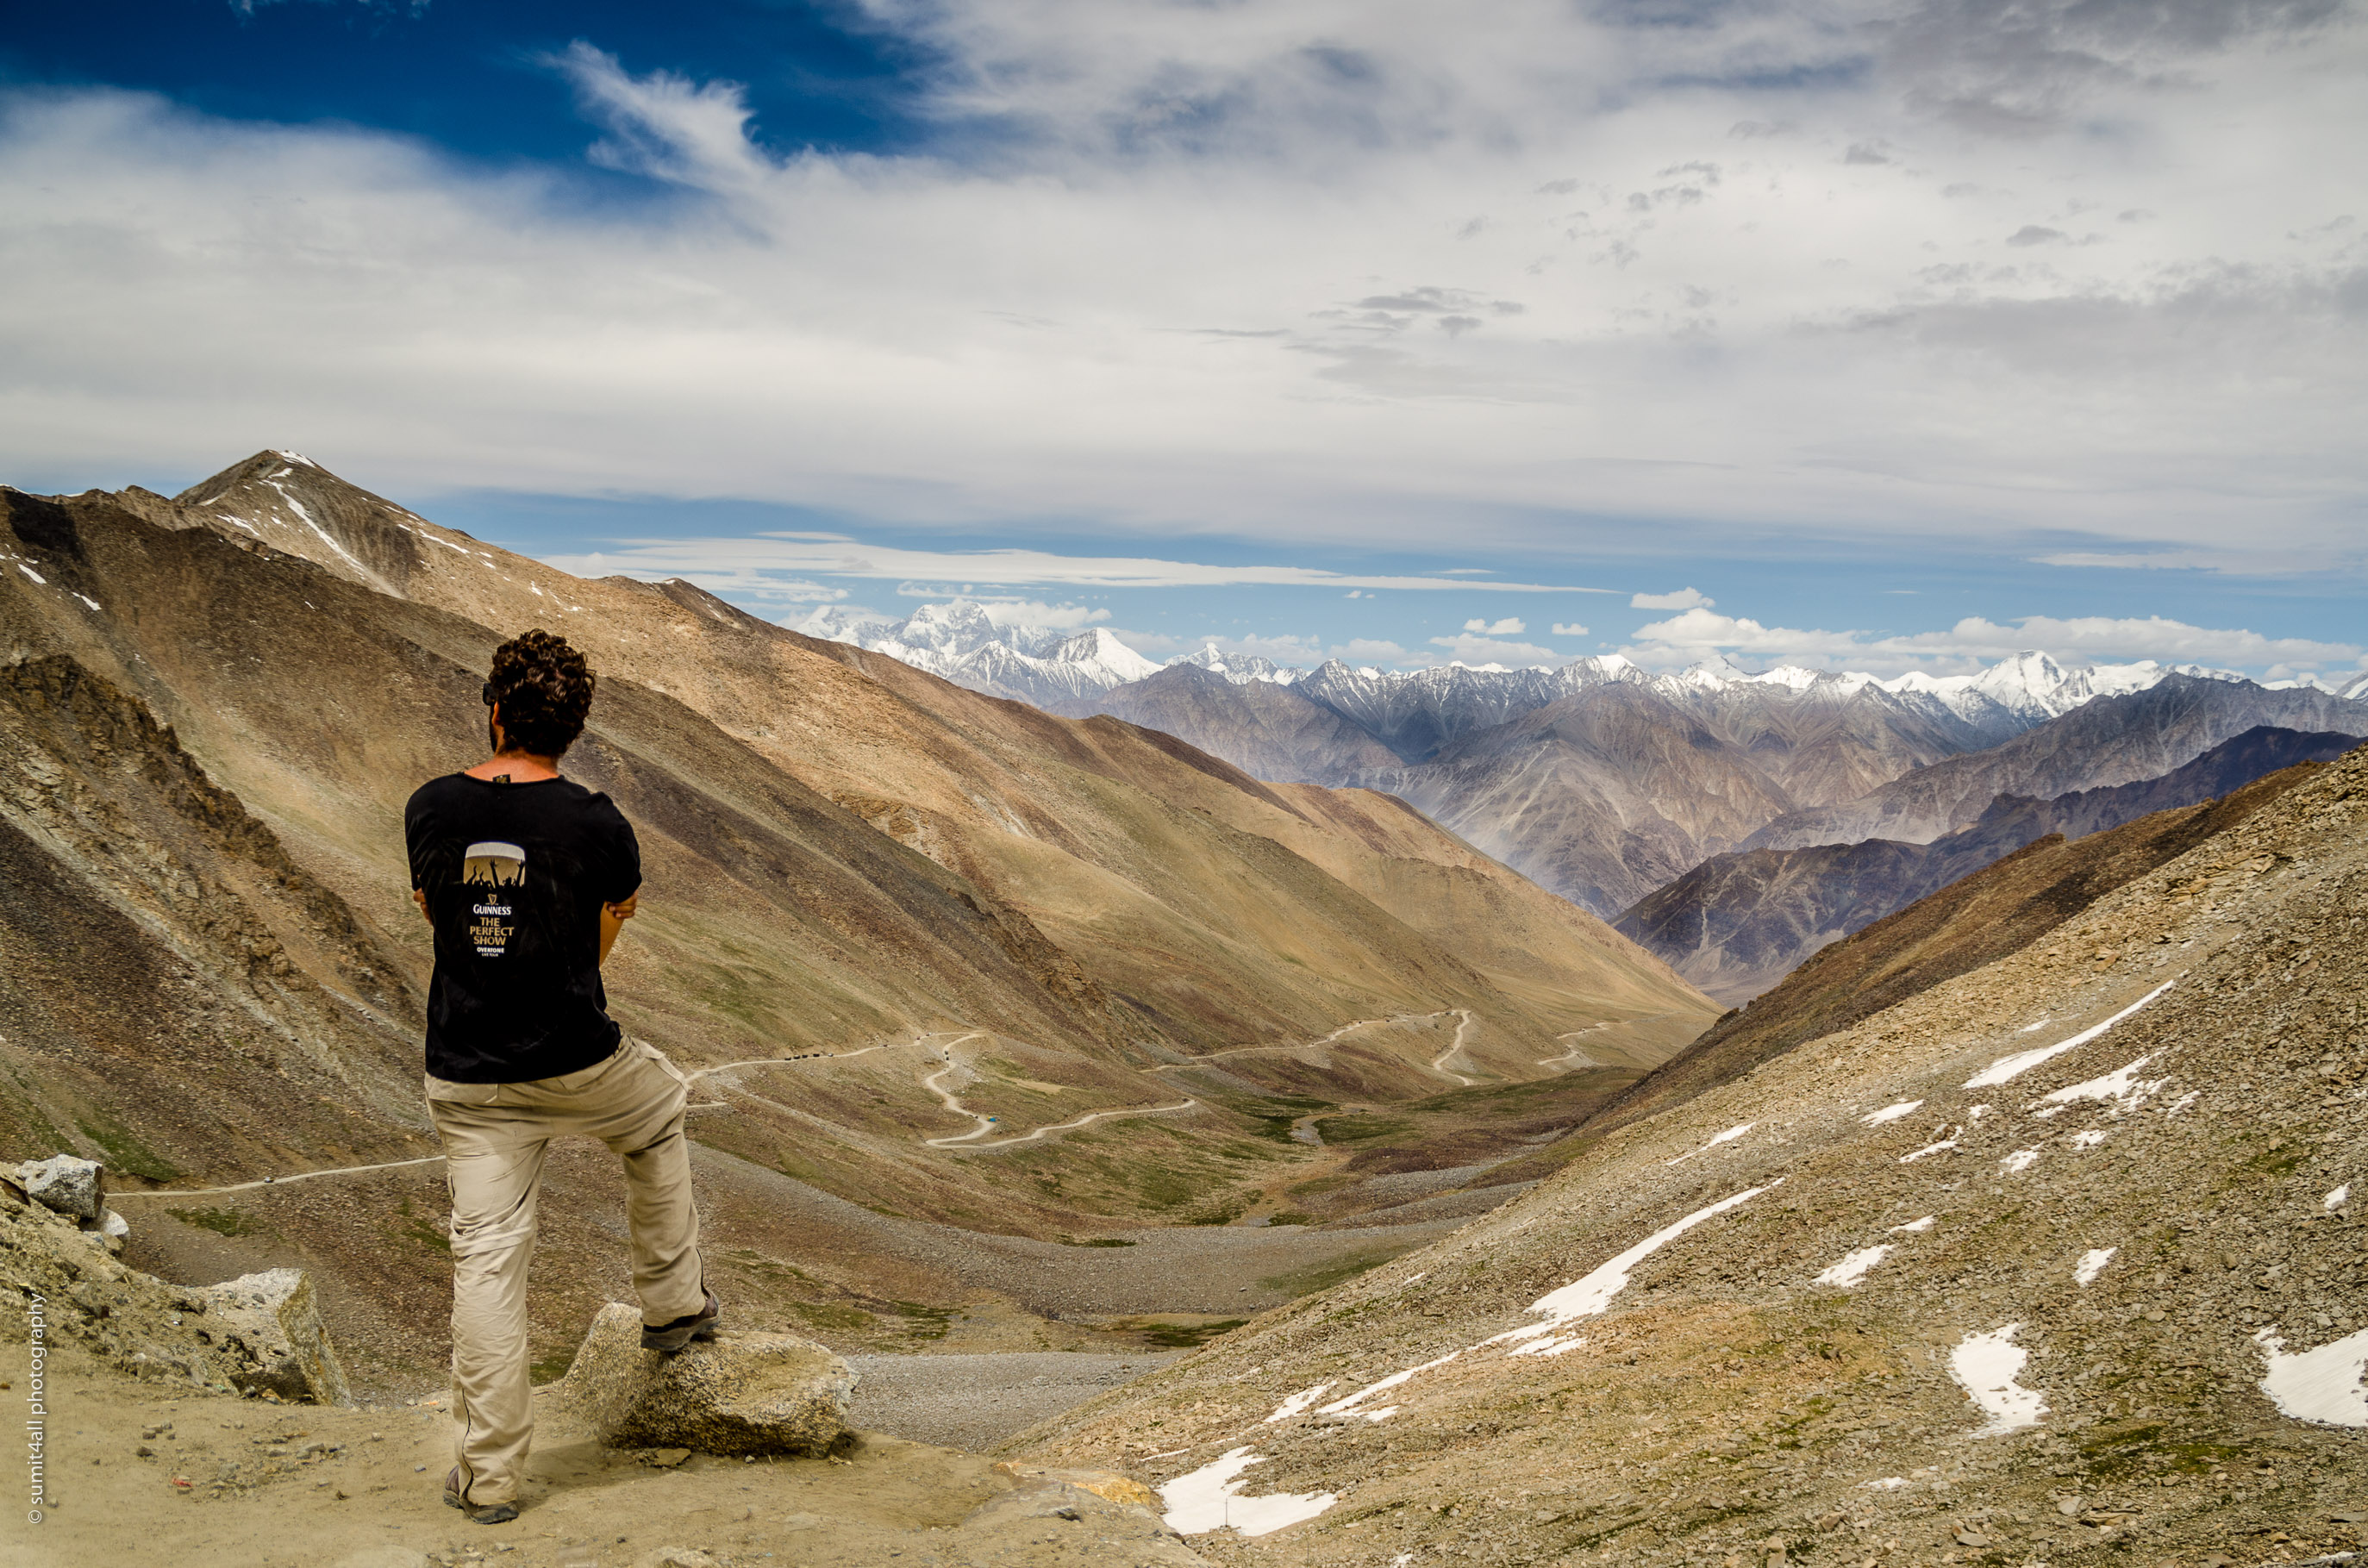 View from the Khardung La Pass at over 18000 feet